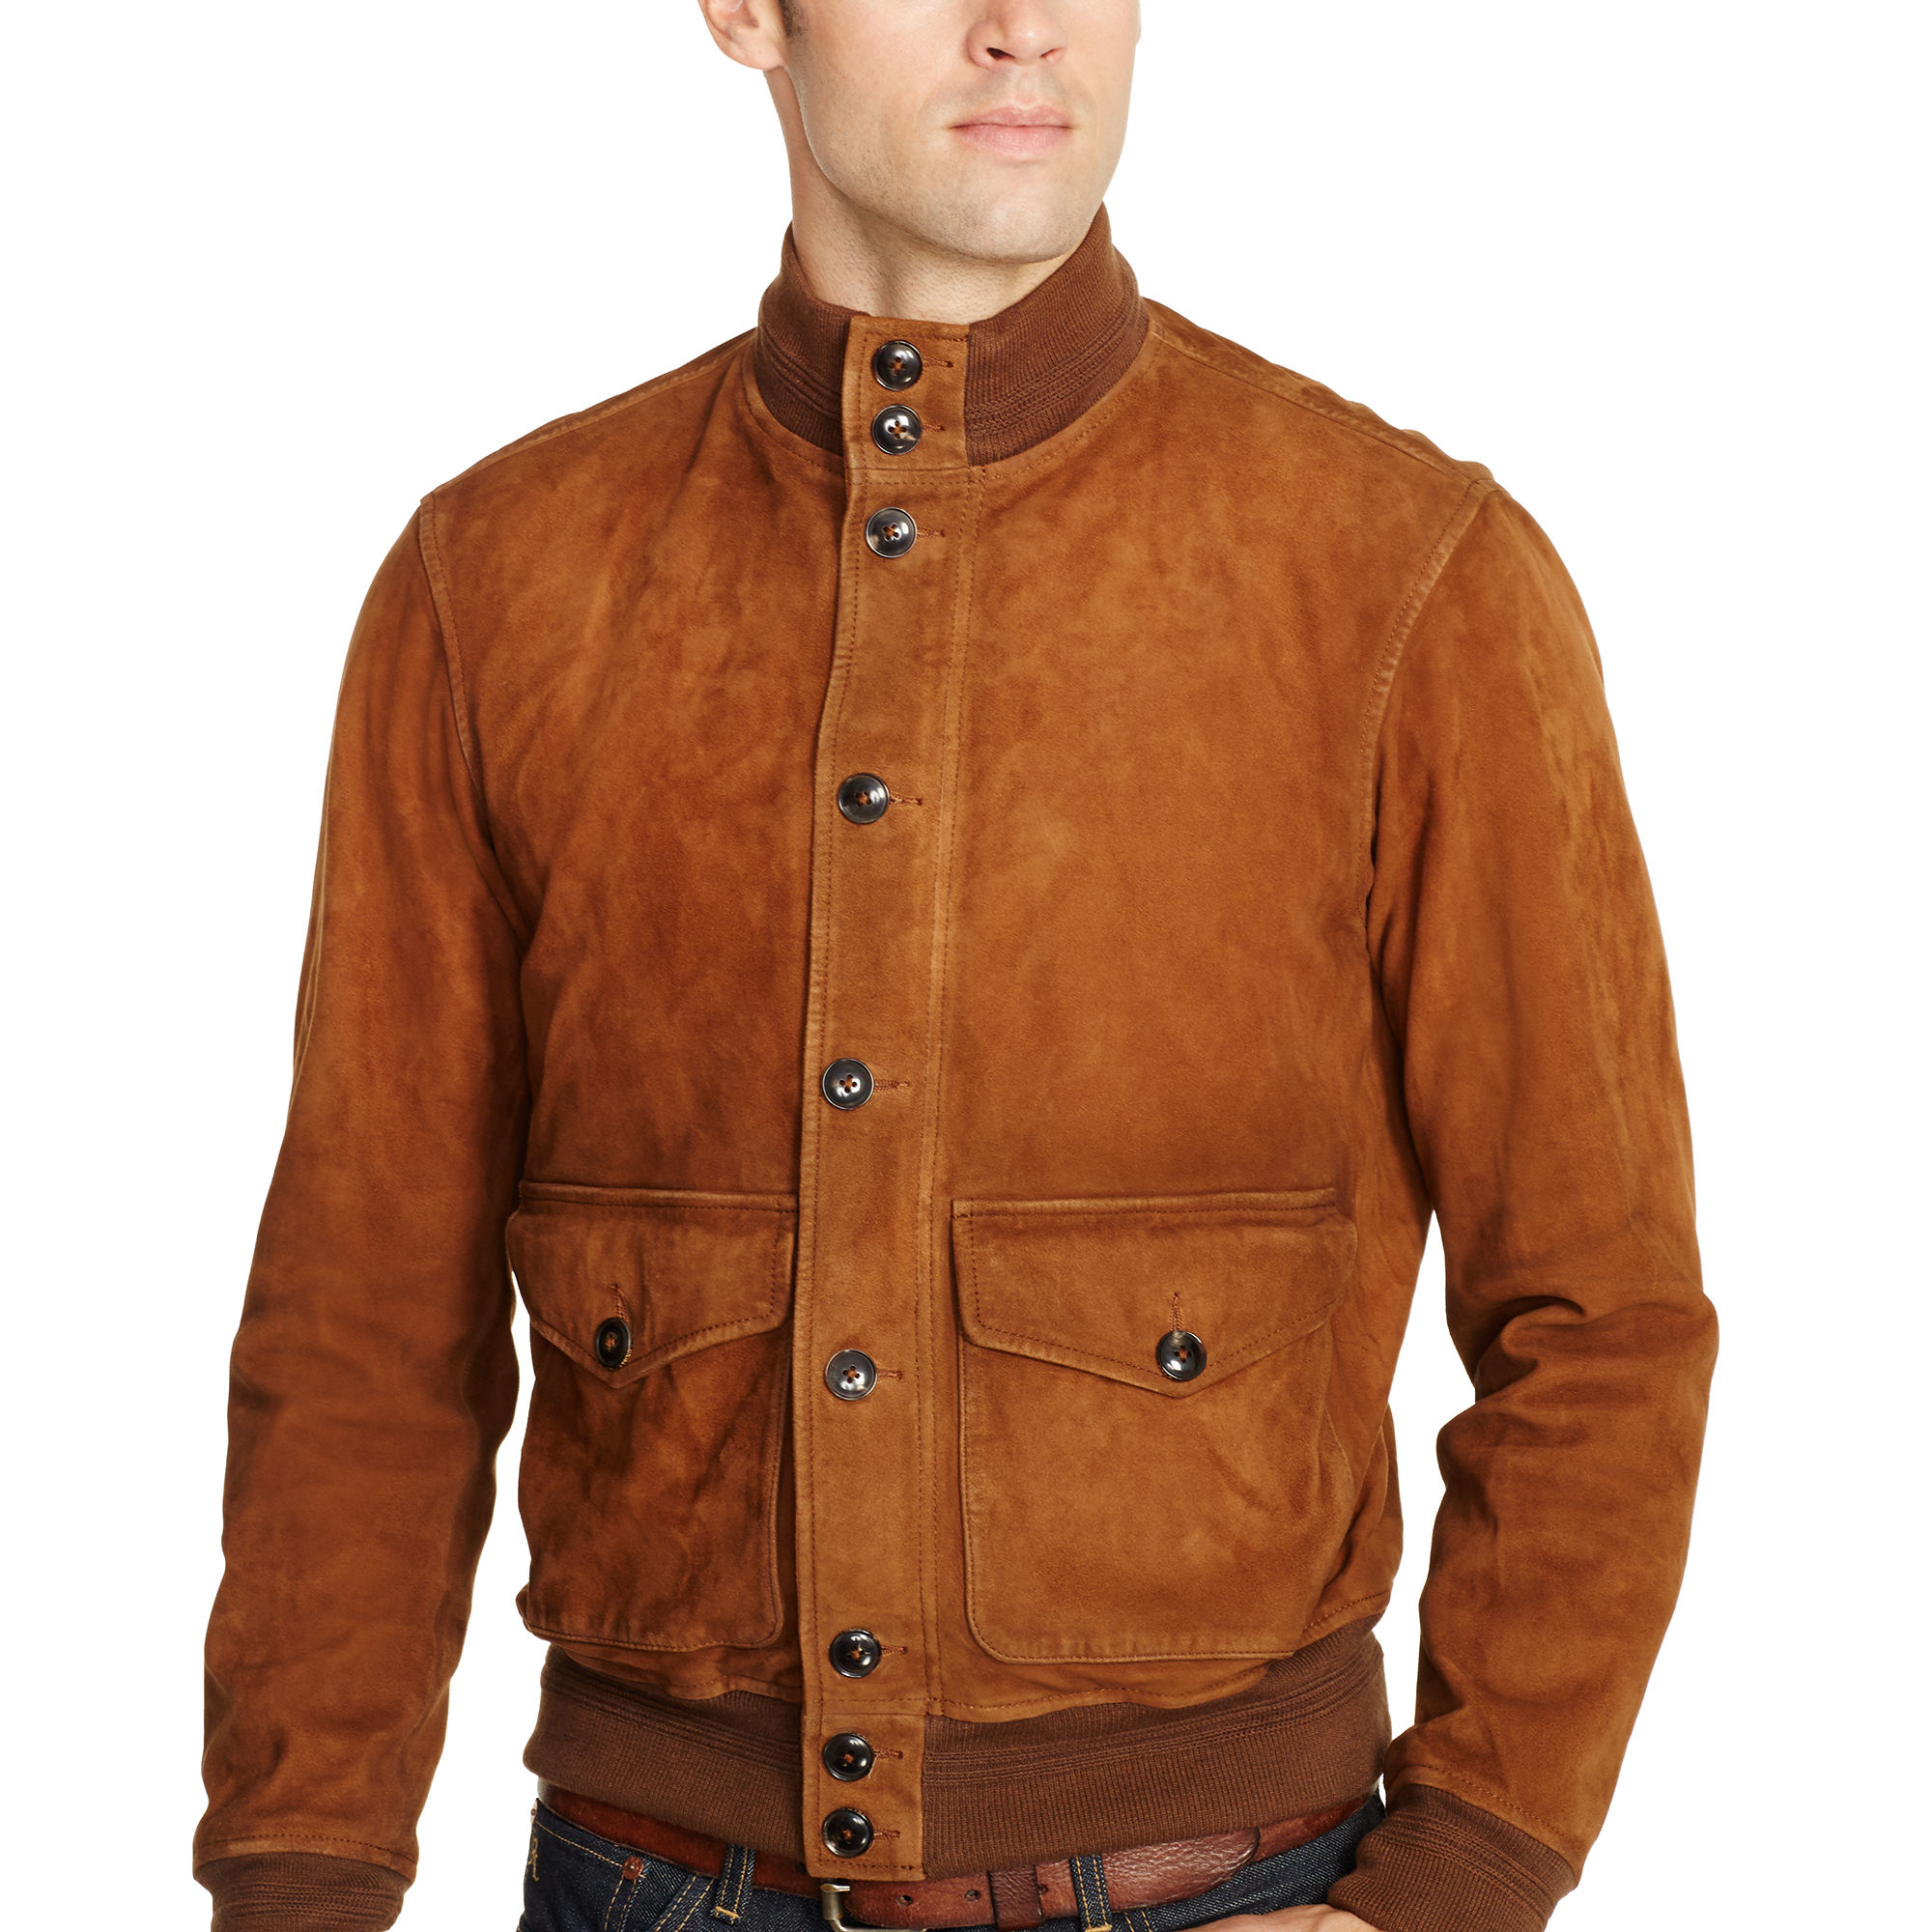 Rubber Rings For Men >> Polo Ralph Lauren Suede Skeet Jacket in Brown for Men - Lyst